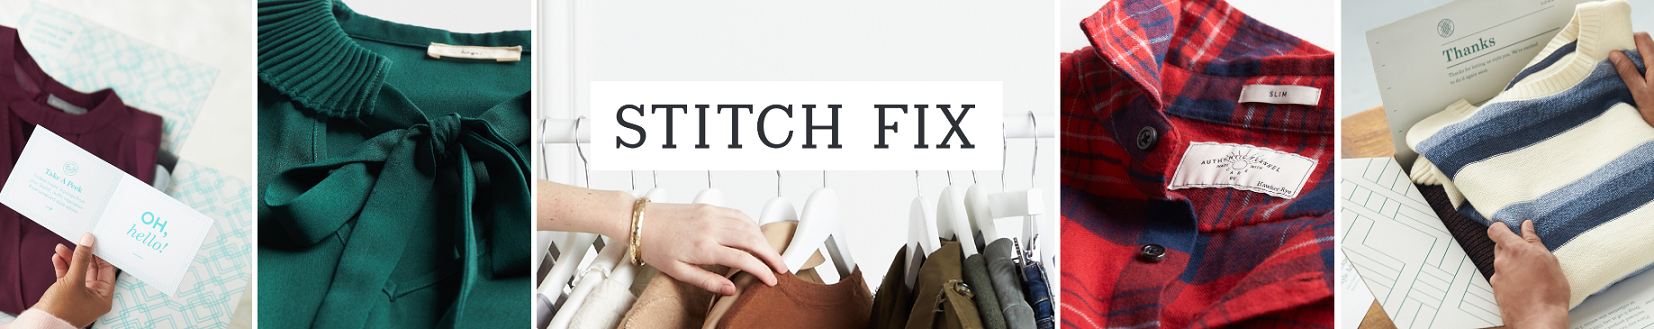 Stitch Fix clothing and greeting and thank you cards